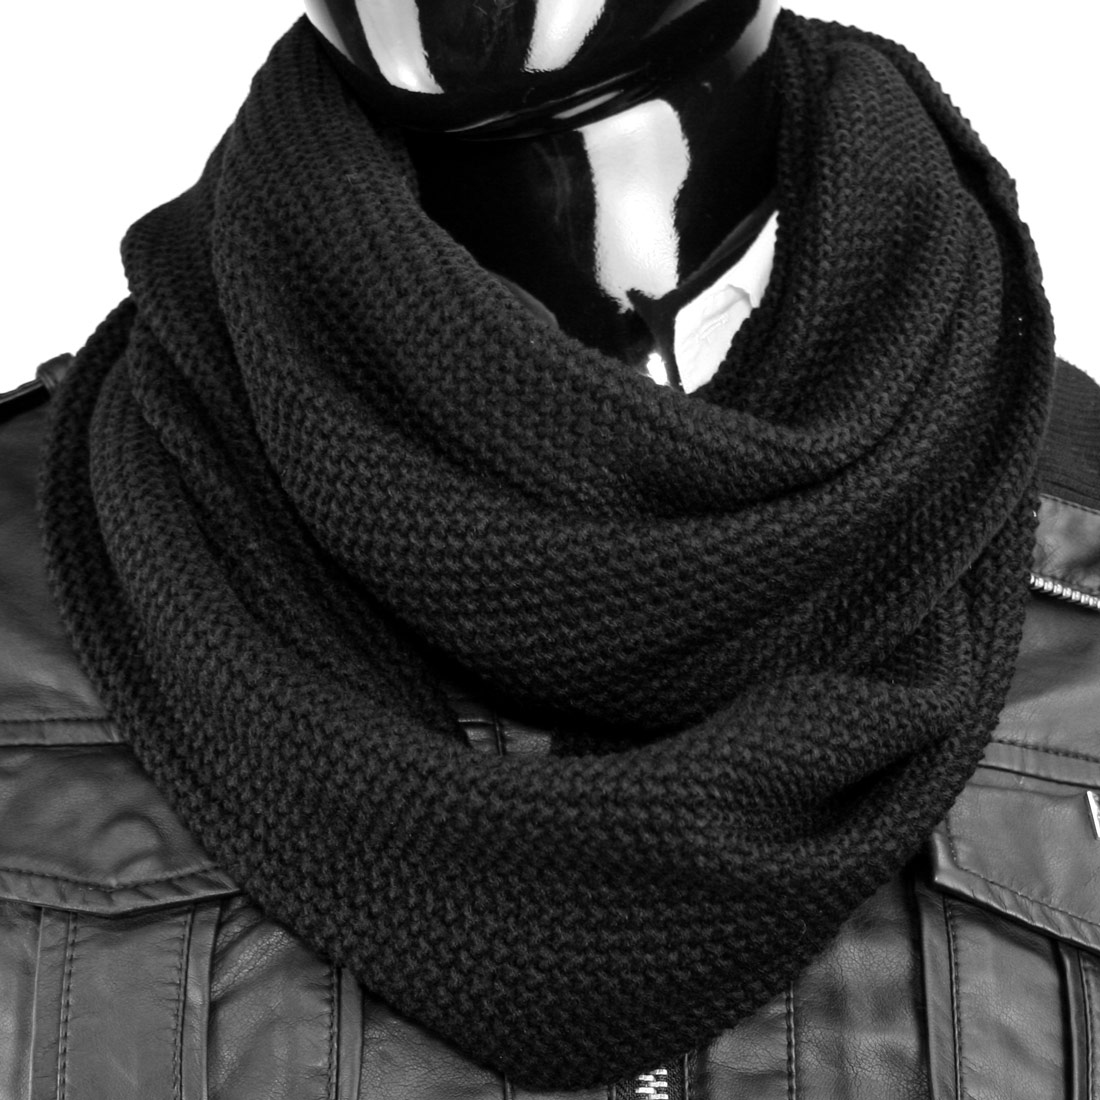 Loop winterschal schal schlauchschal damen herren winter for Schal binden herren